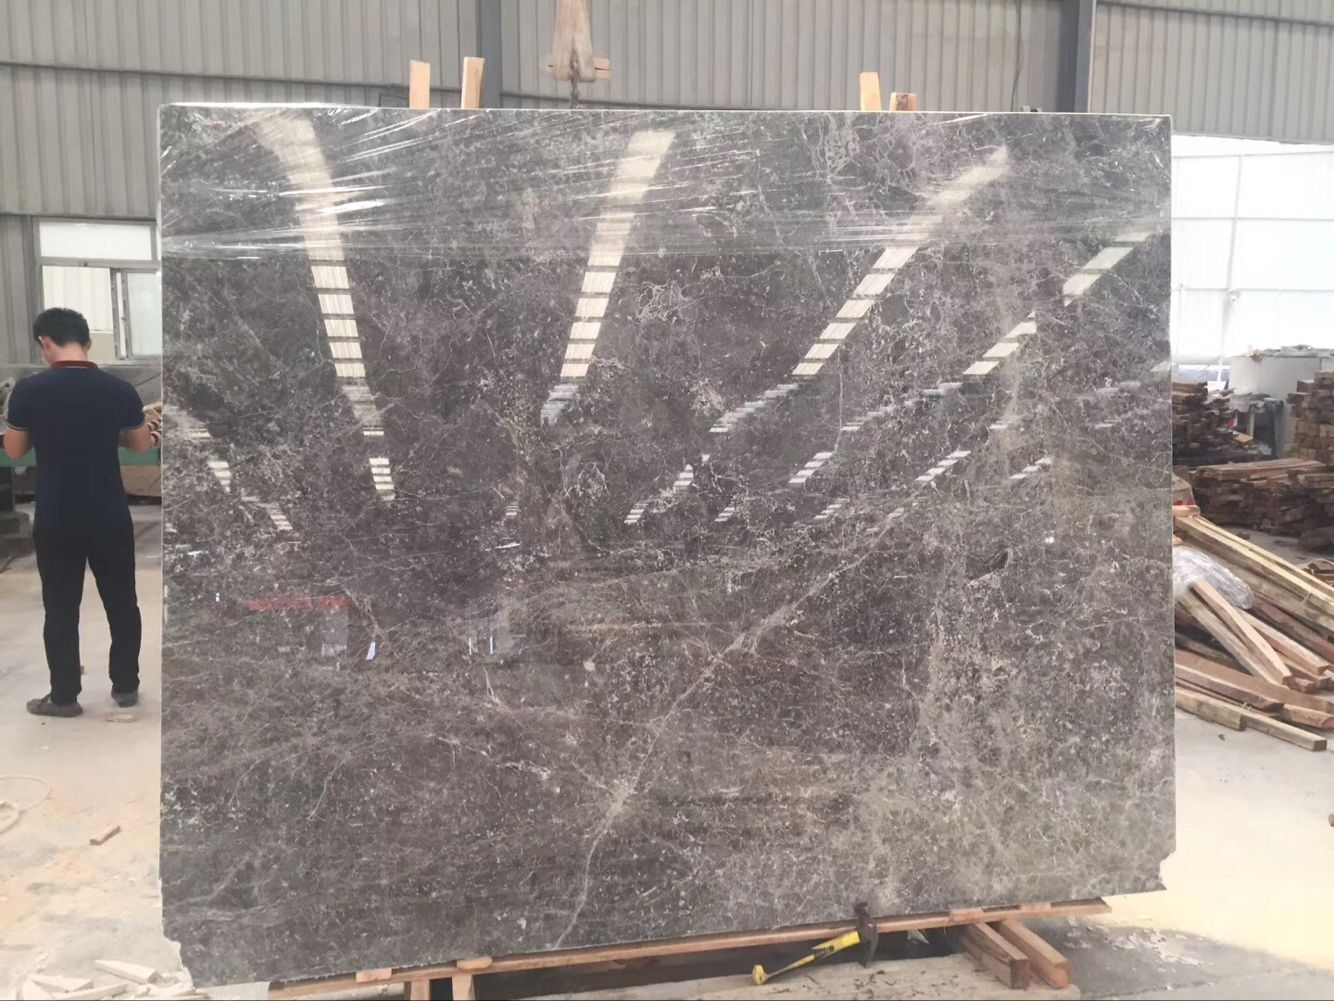 Oscar Grey��Fior Di Bosco Baltic Gray Marble Tundra Blue Marble with Polished Tiles